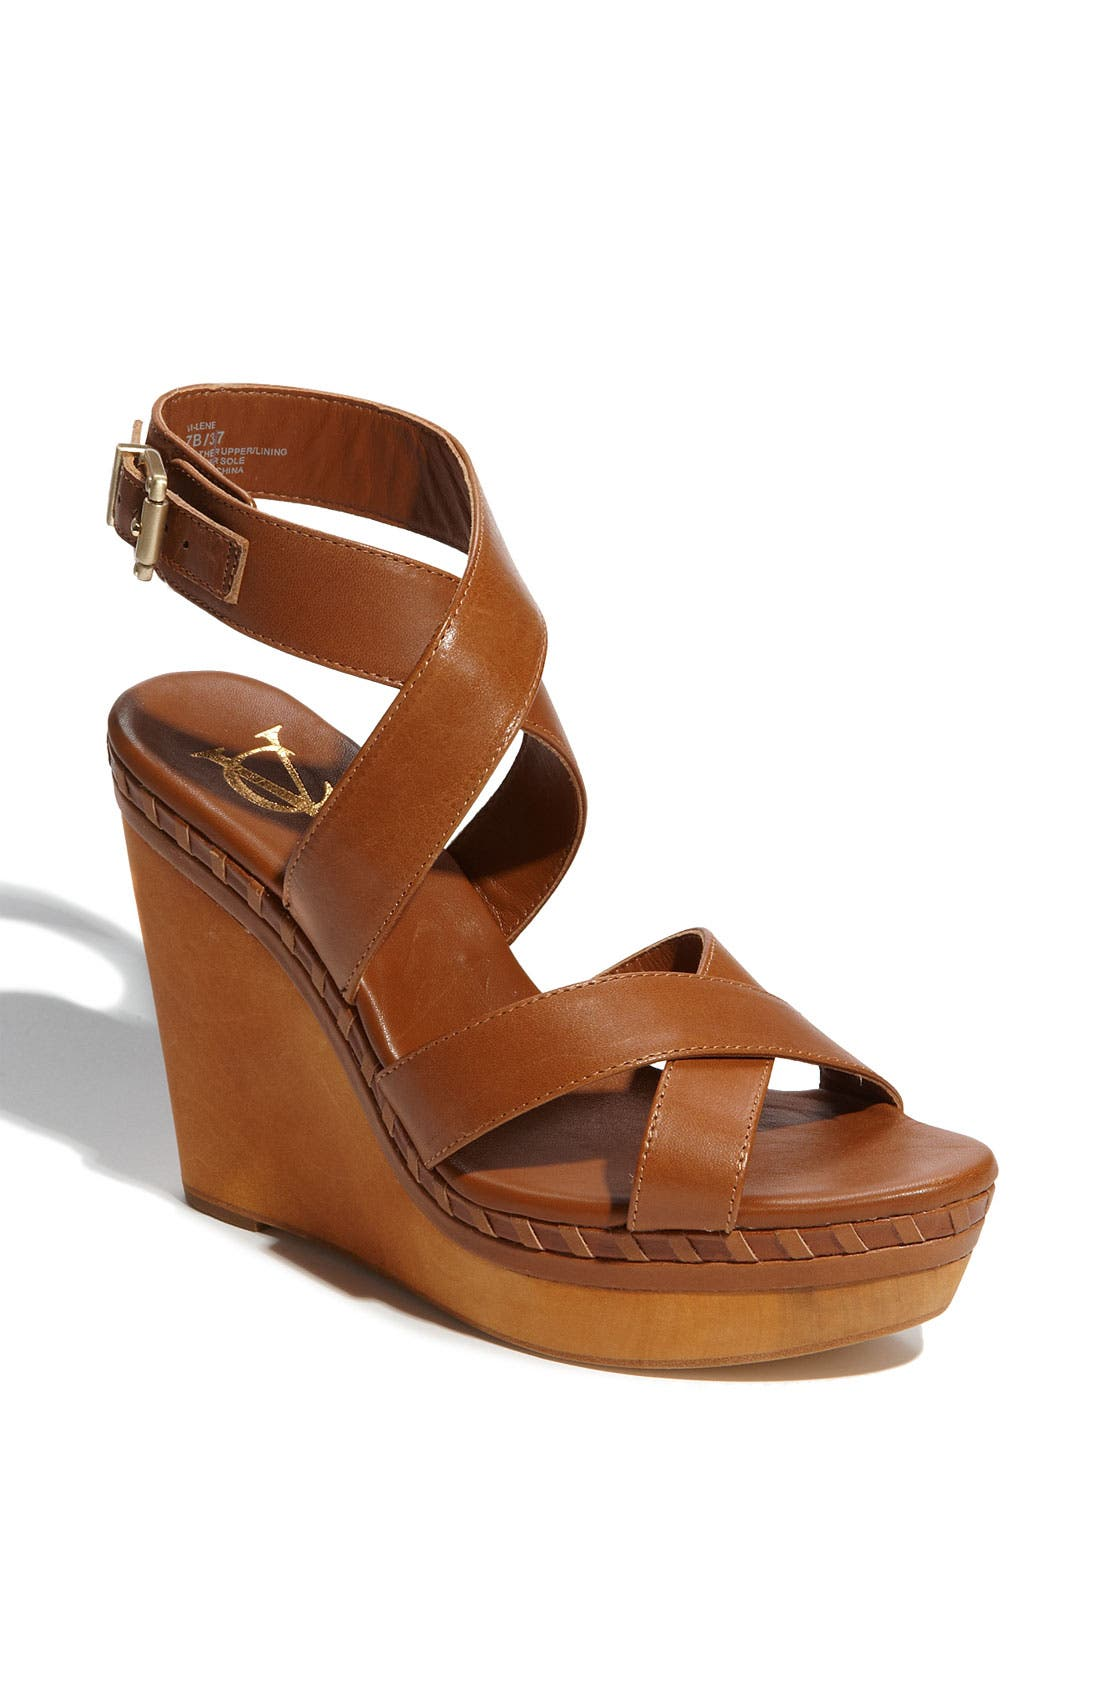 Alternate Image 1 Selected - VC Signature 'Lene' Sandal (Exclusive)